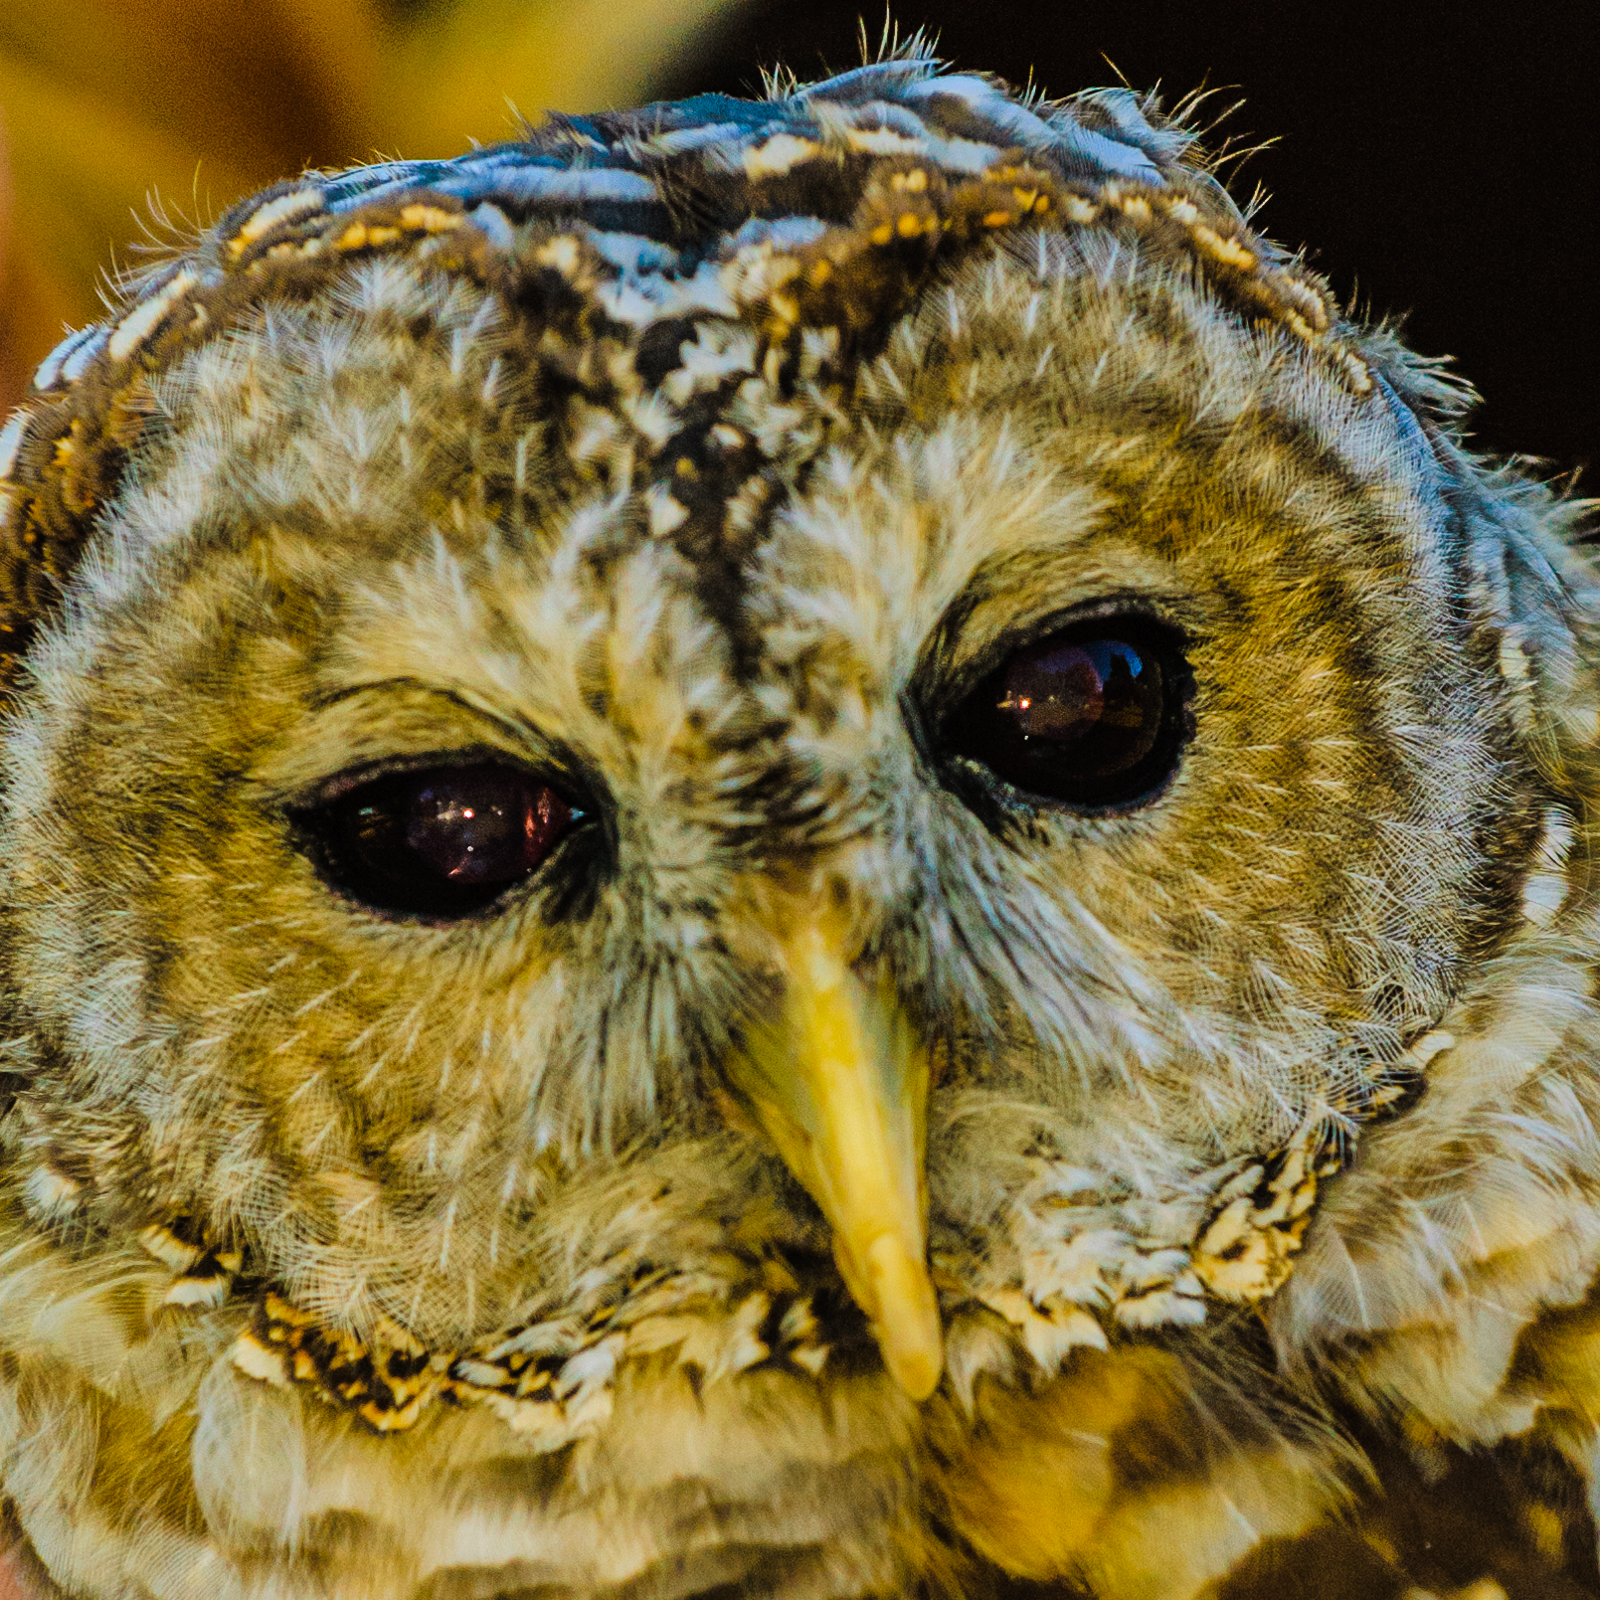 wise-owl-0367